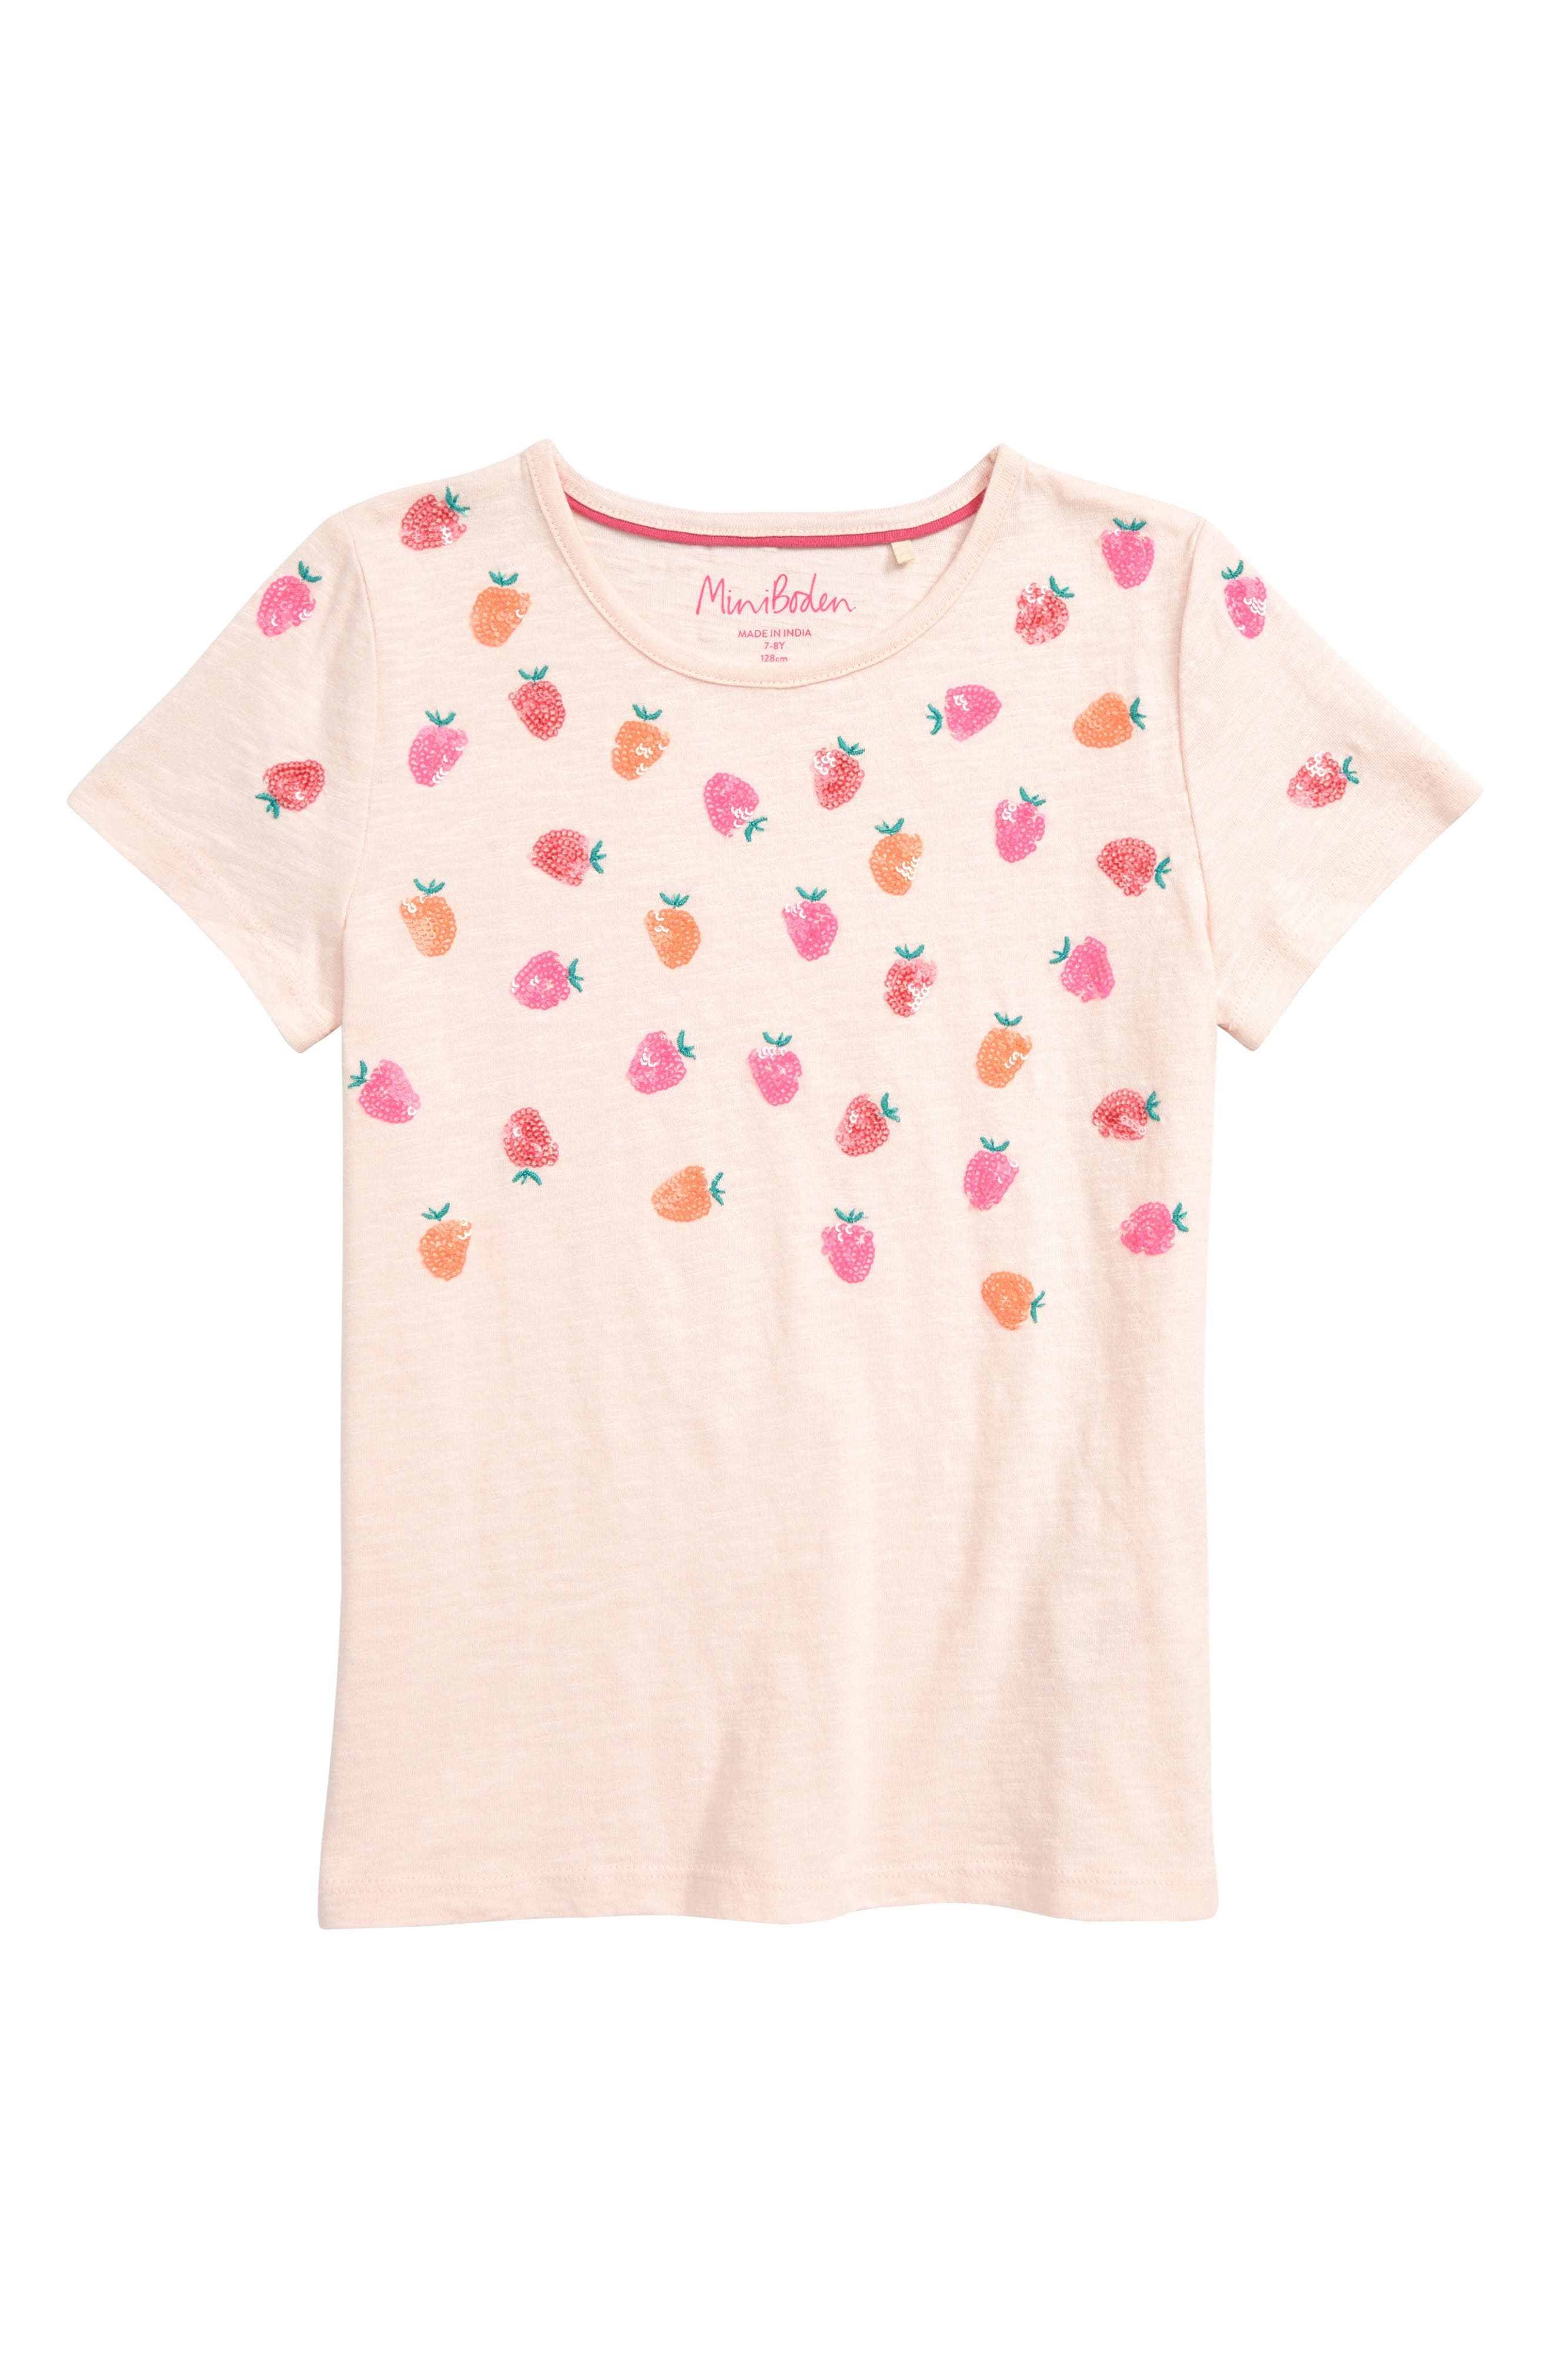 MINI BODEN Boden Scattered Sequin Star Tee, Main, color, PNK PARISIAN PINK STRAWBERRIES